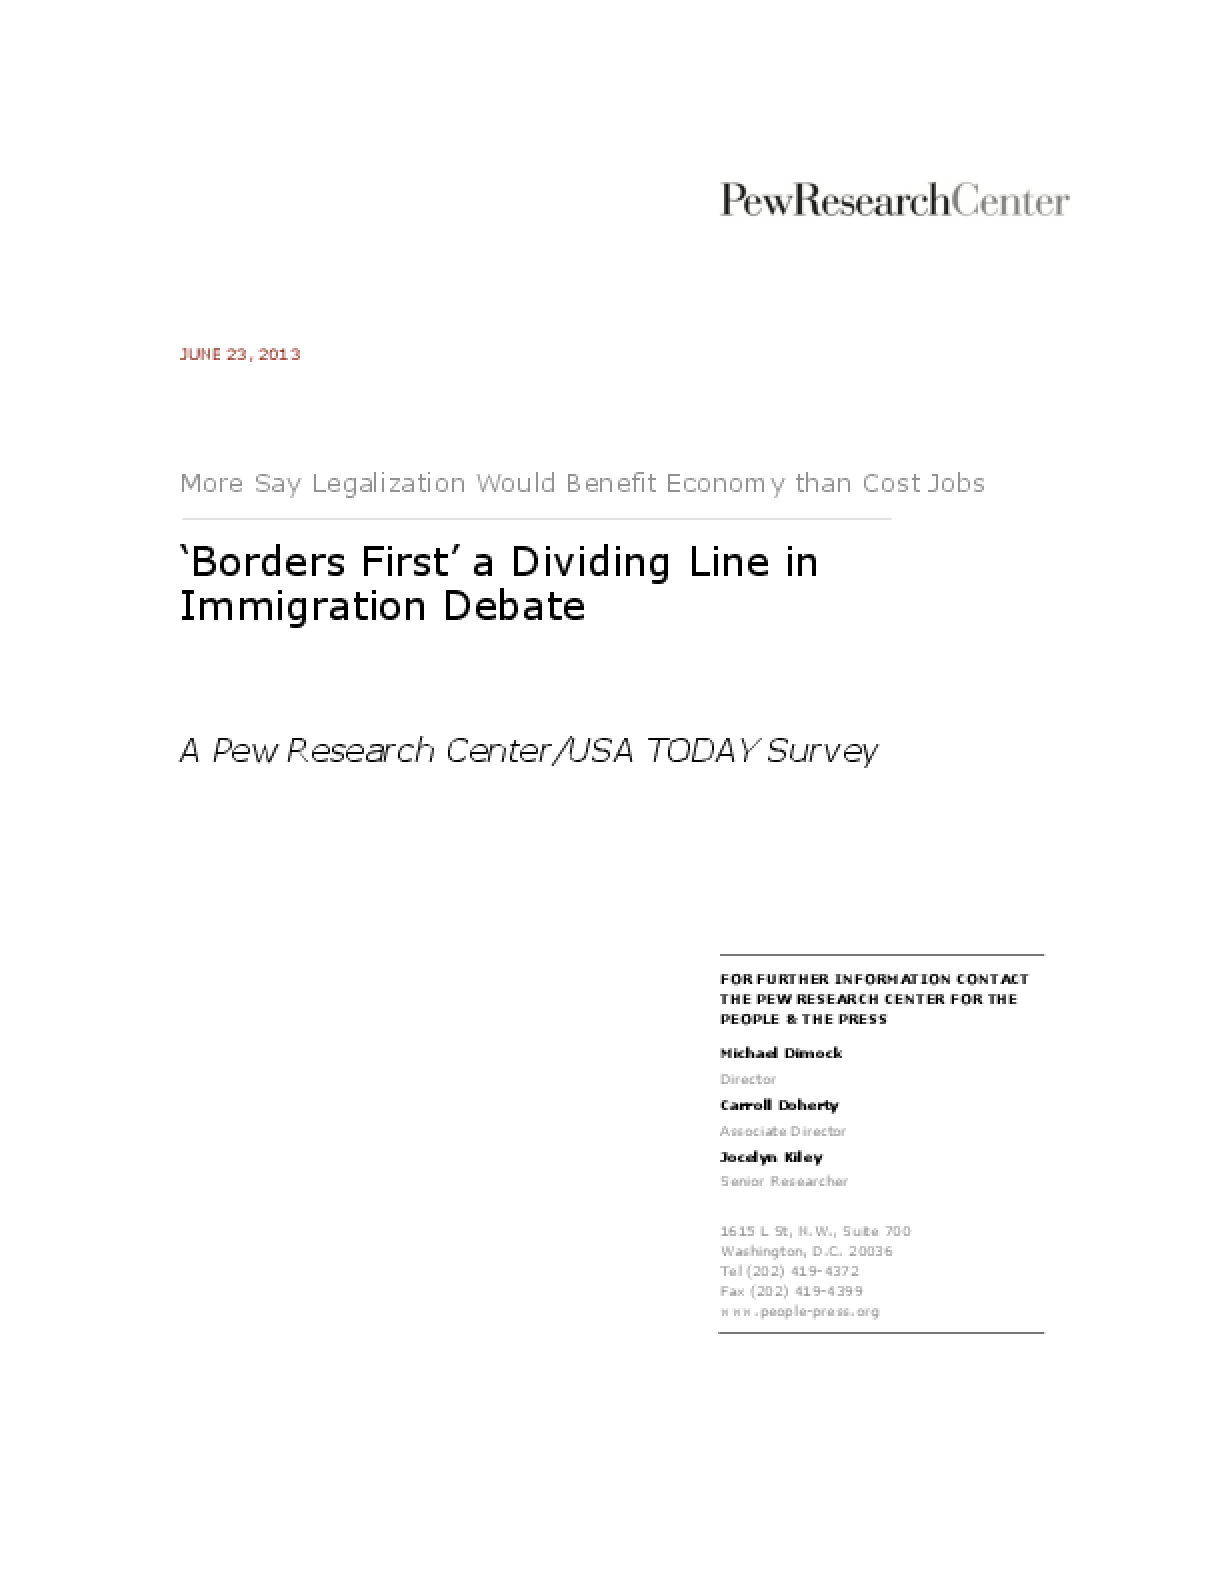 'Borders First': A Dividing Line in Immigration Debate